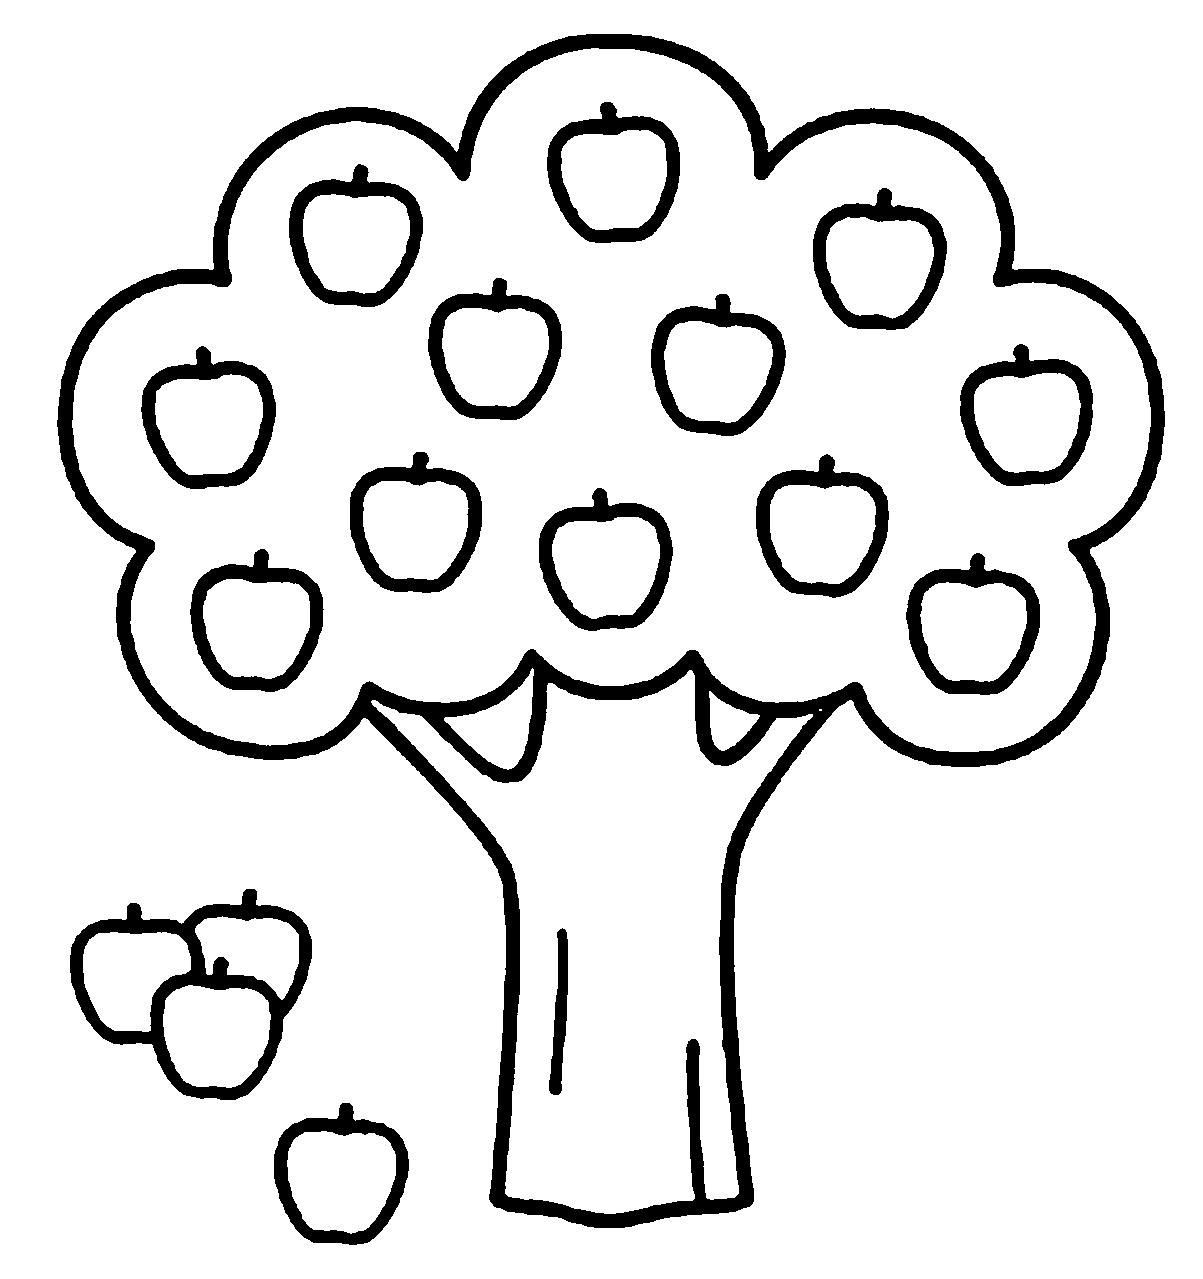 1203x1279 Wonderful Coloring Page Of An Apple Perspectiv